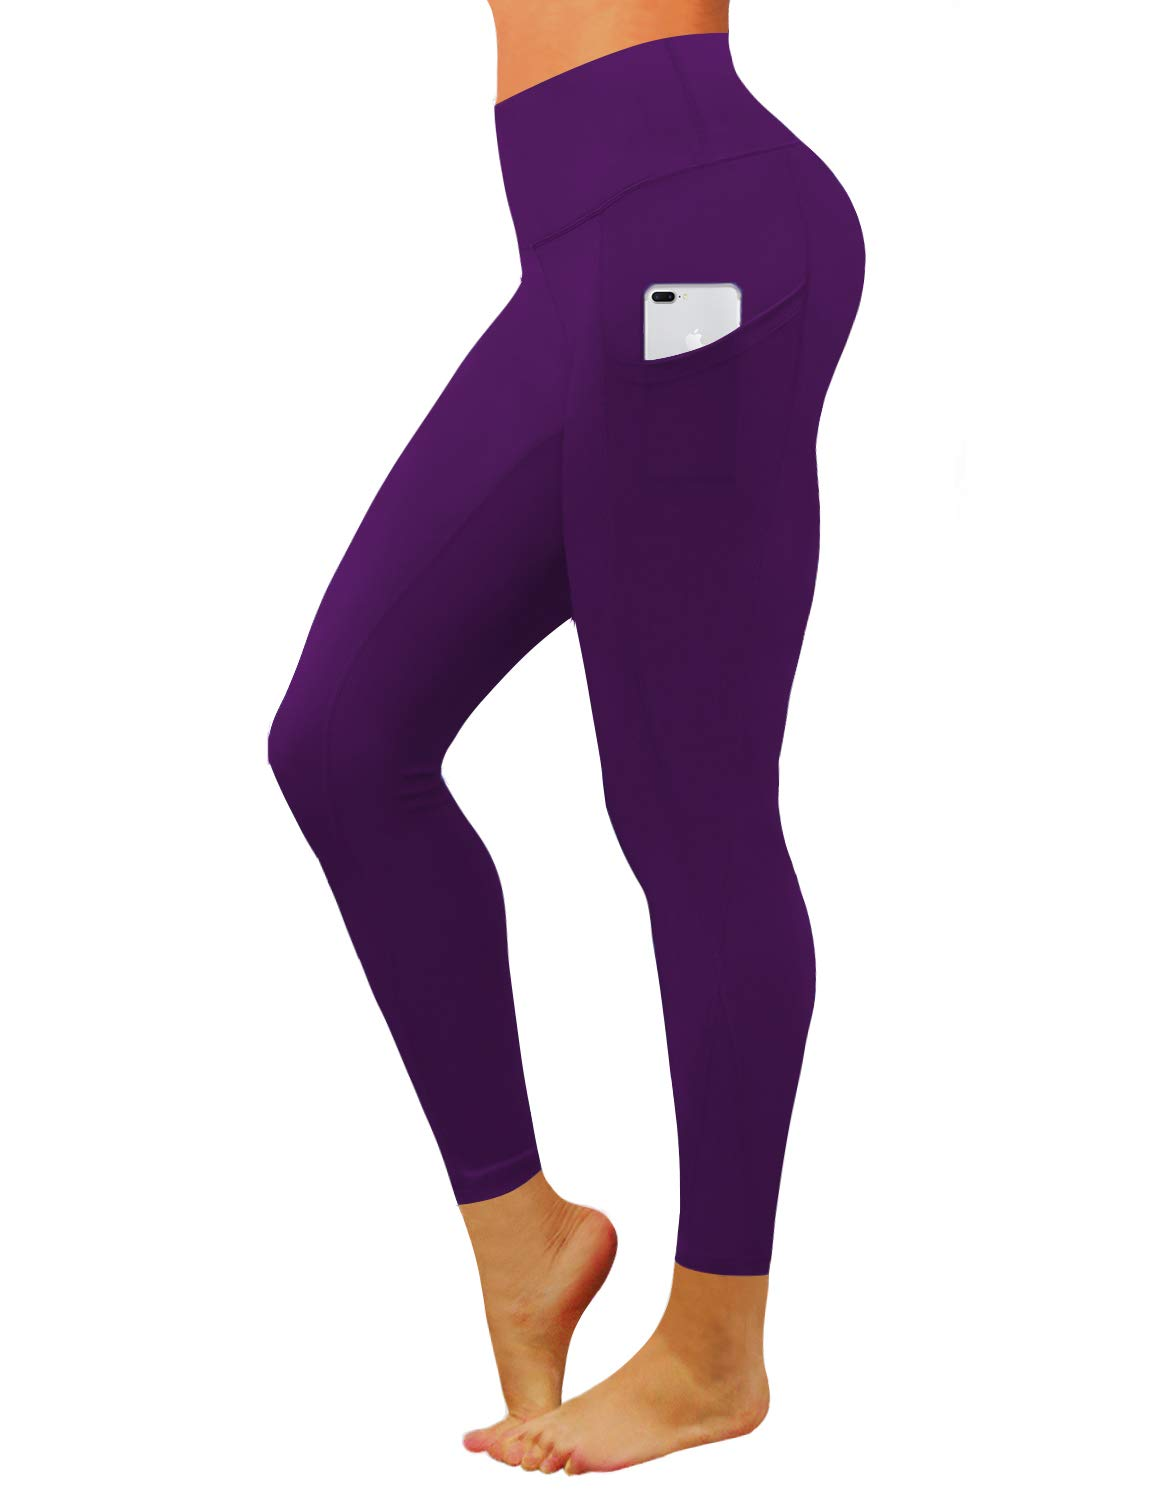 BUBBLELIME High Compression Yoga Pants Out Pocket Running Pants High Waist Moisture Wicking Workout Leggings, Bwwb010 Eggplantpurple, X-Small